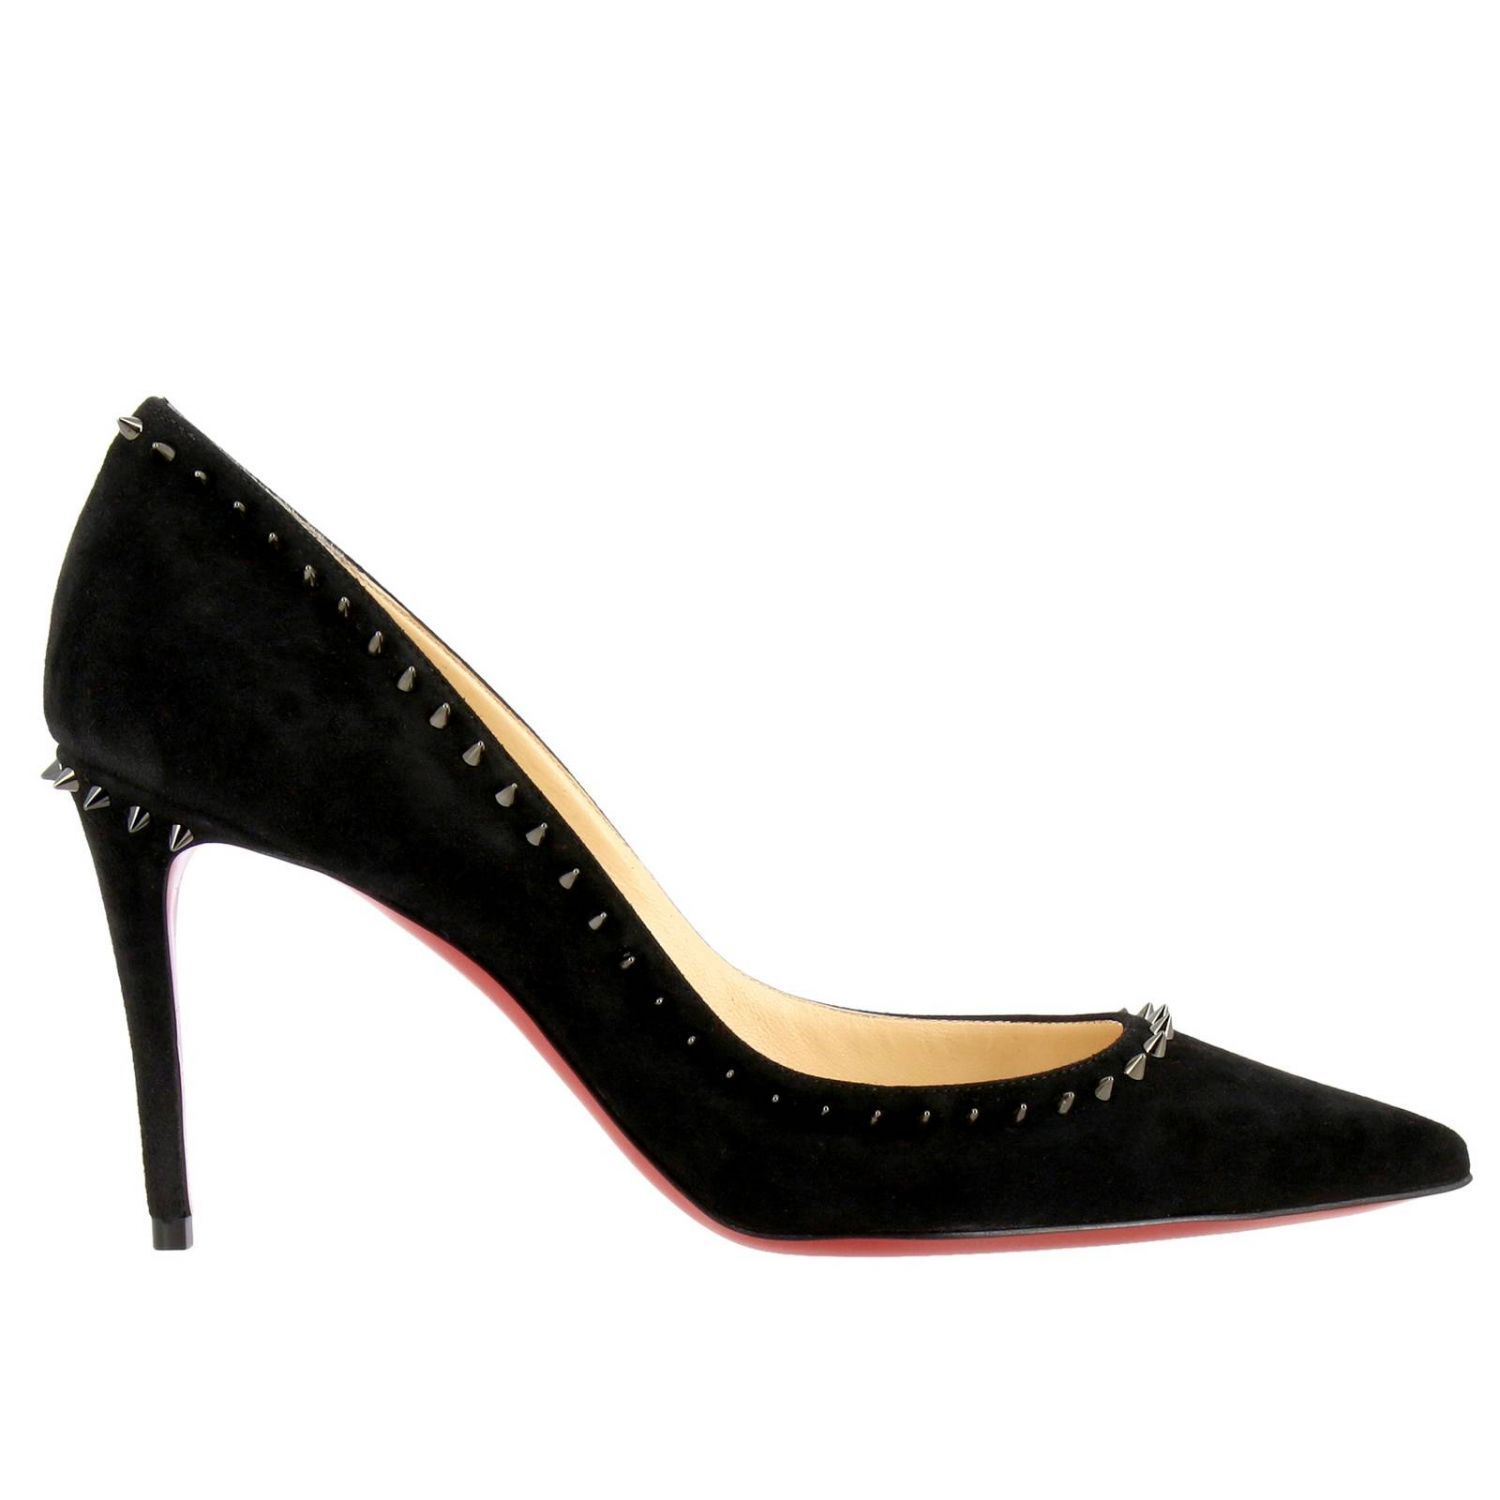 Pumps Christian Louboutin: Angelina Christian Louboutin pumps in suede with studs black 1